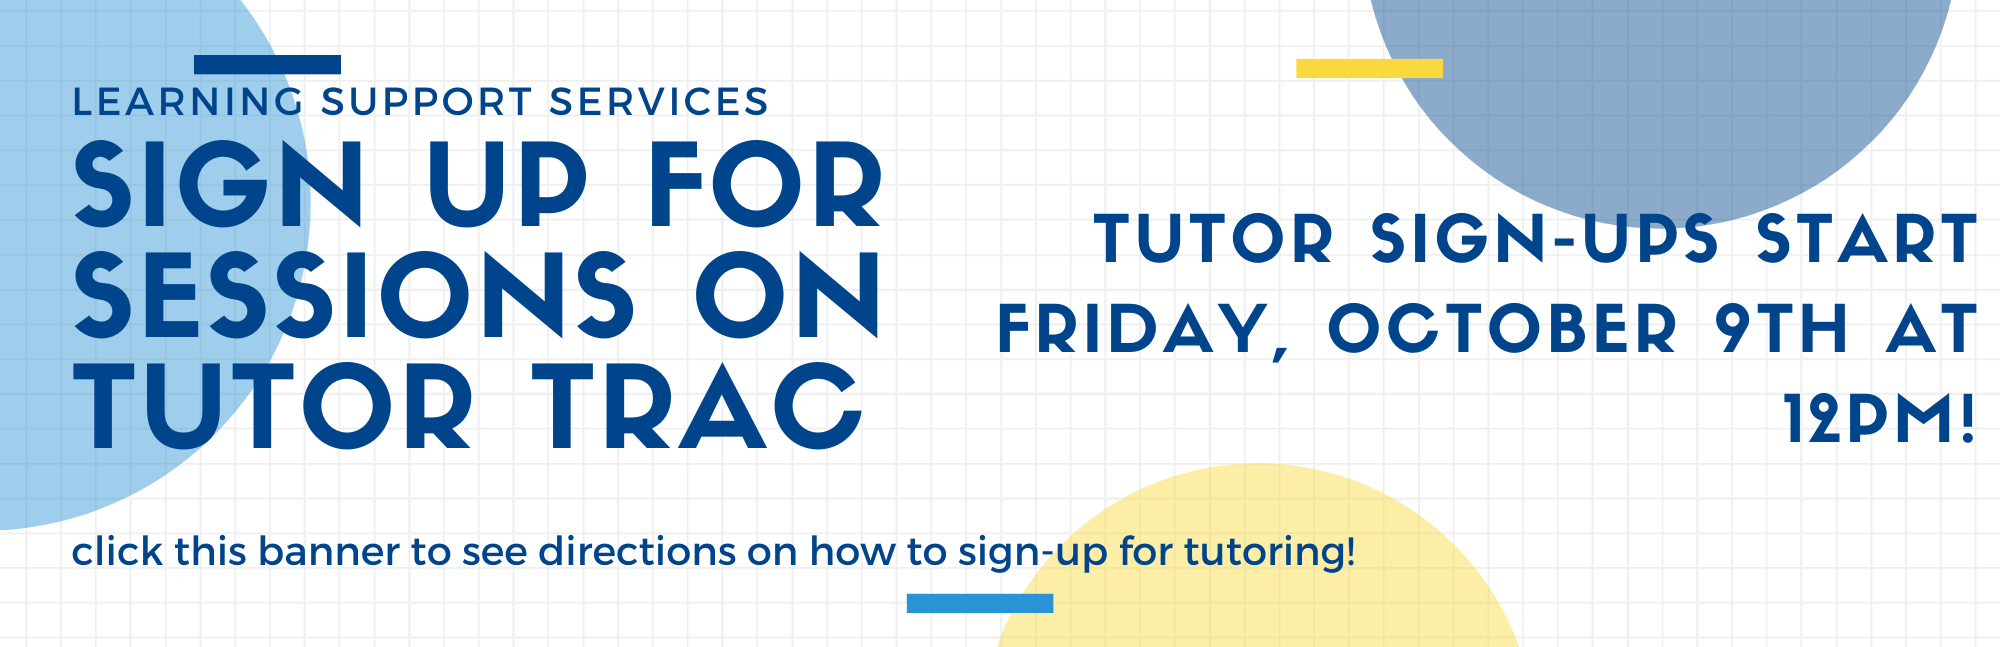 access_tutortrac_